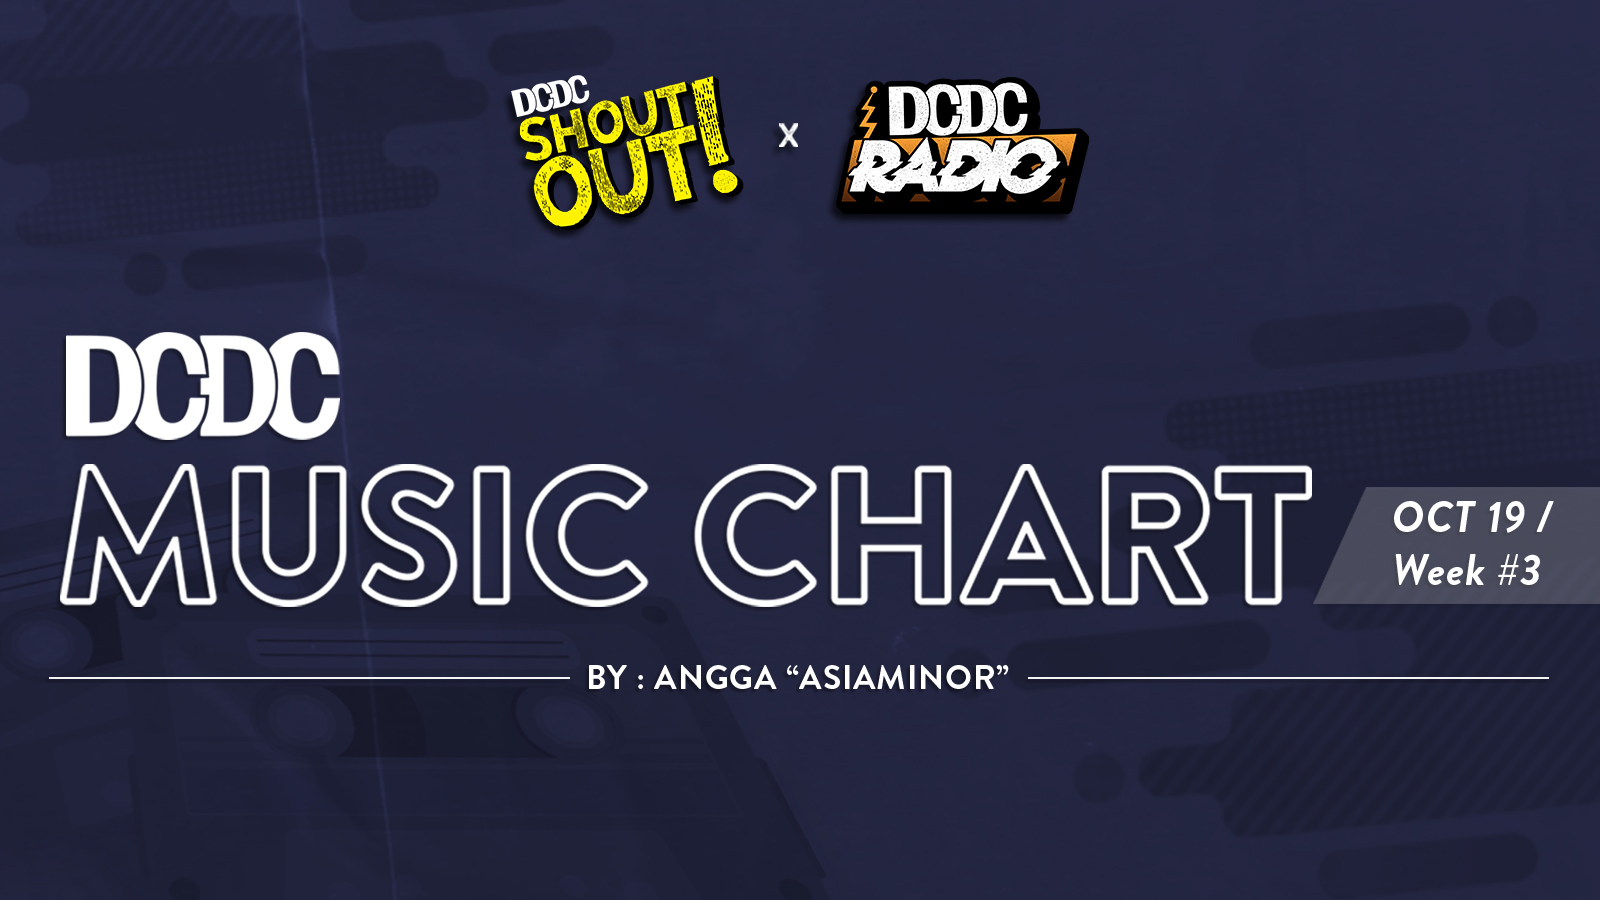 DCDC Music Chart - #3rd Week of October  2019